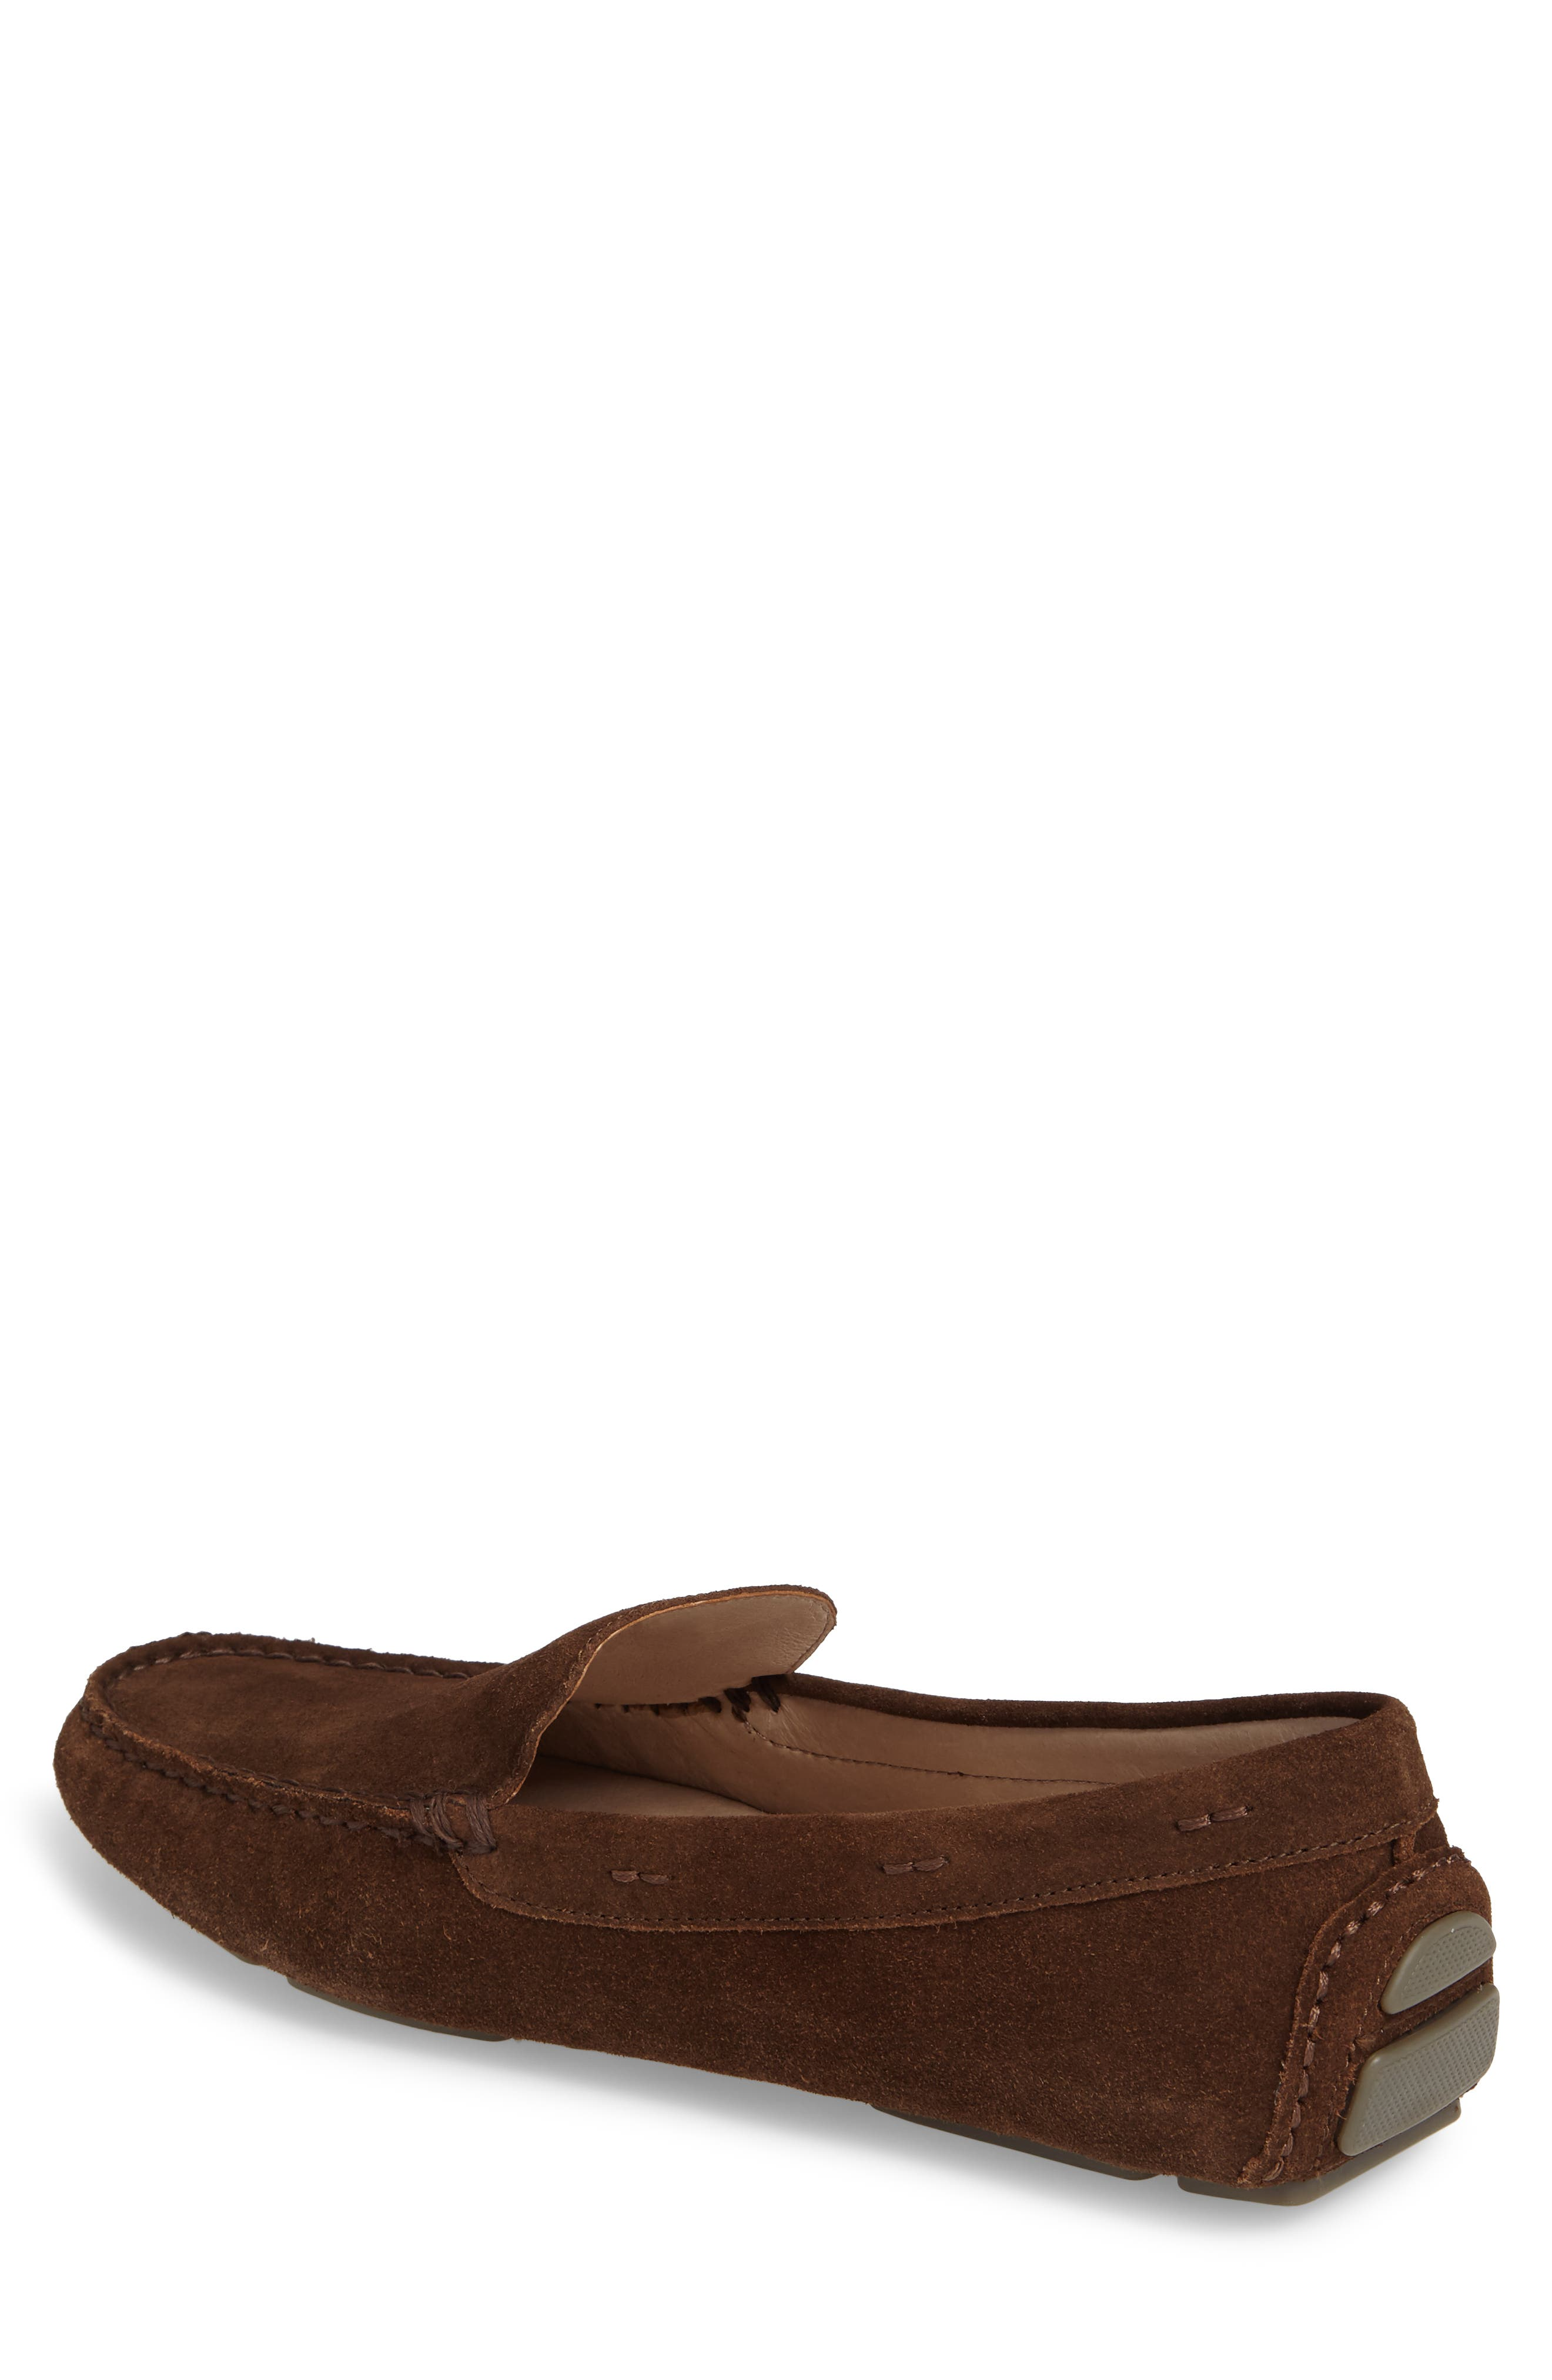 Pagota Driving Loafer,                             Alternate thumbnail 8, color,